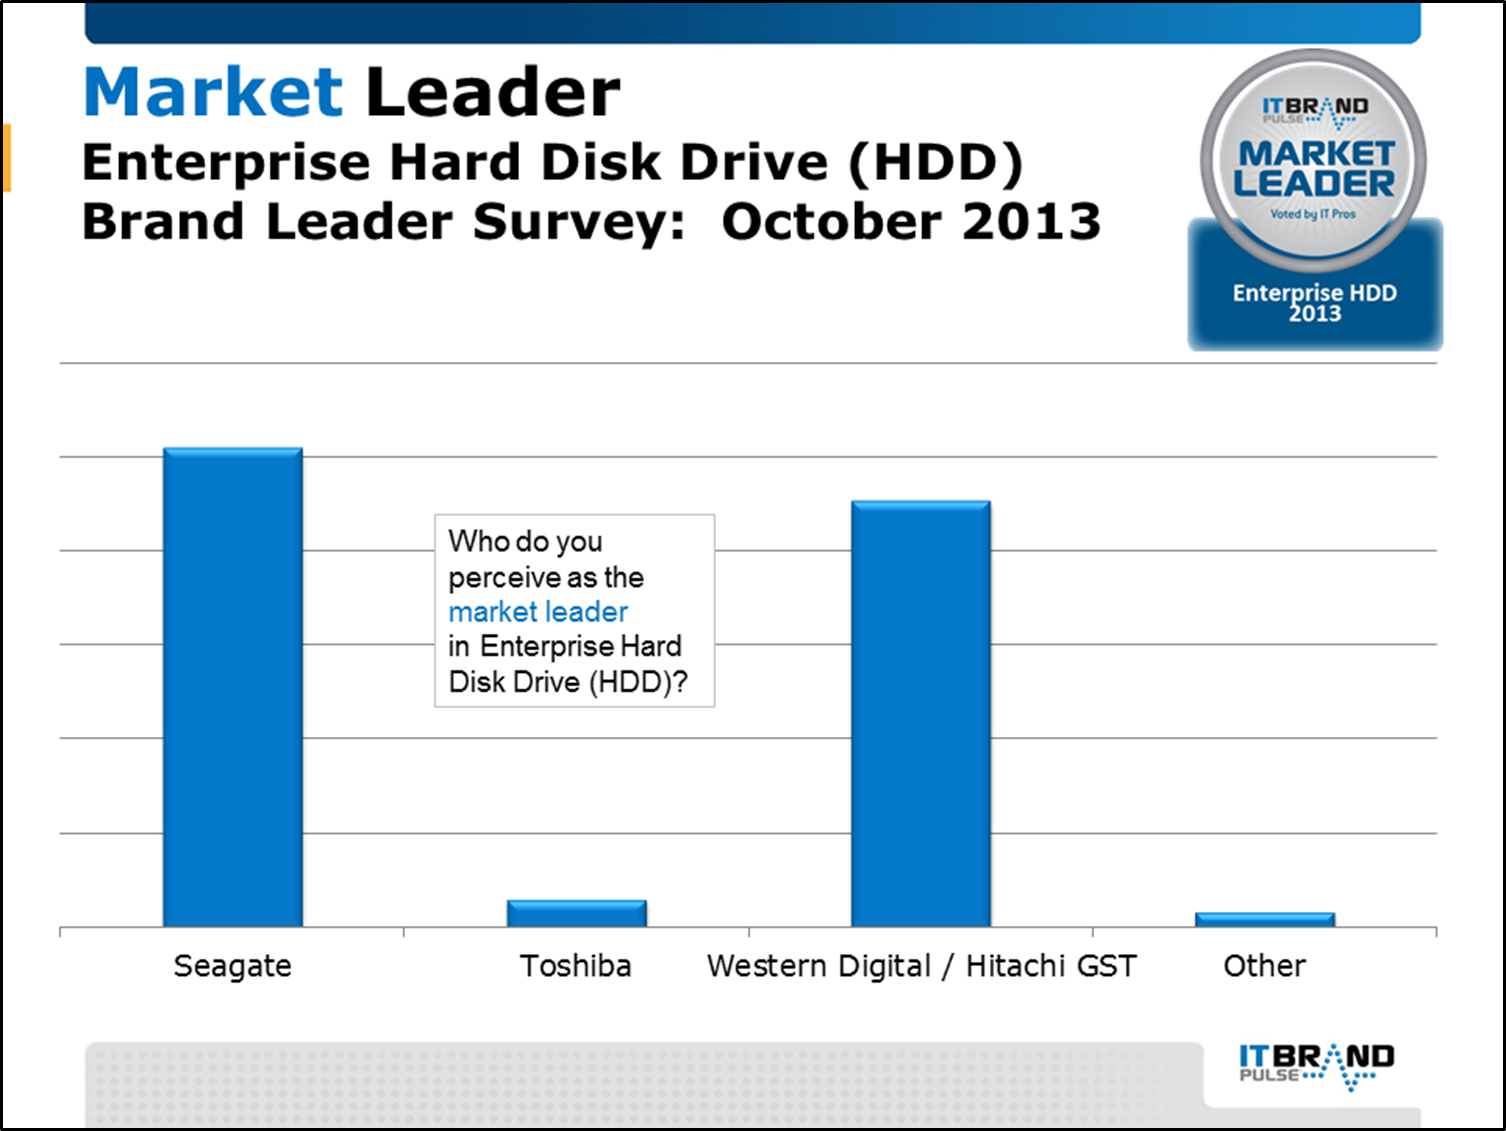 2013 Brand Leader Survey Results It Pulse Swith For Diagram October Enterprise Hard Disk Drive Hdd